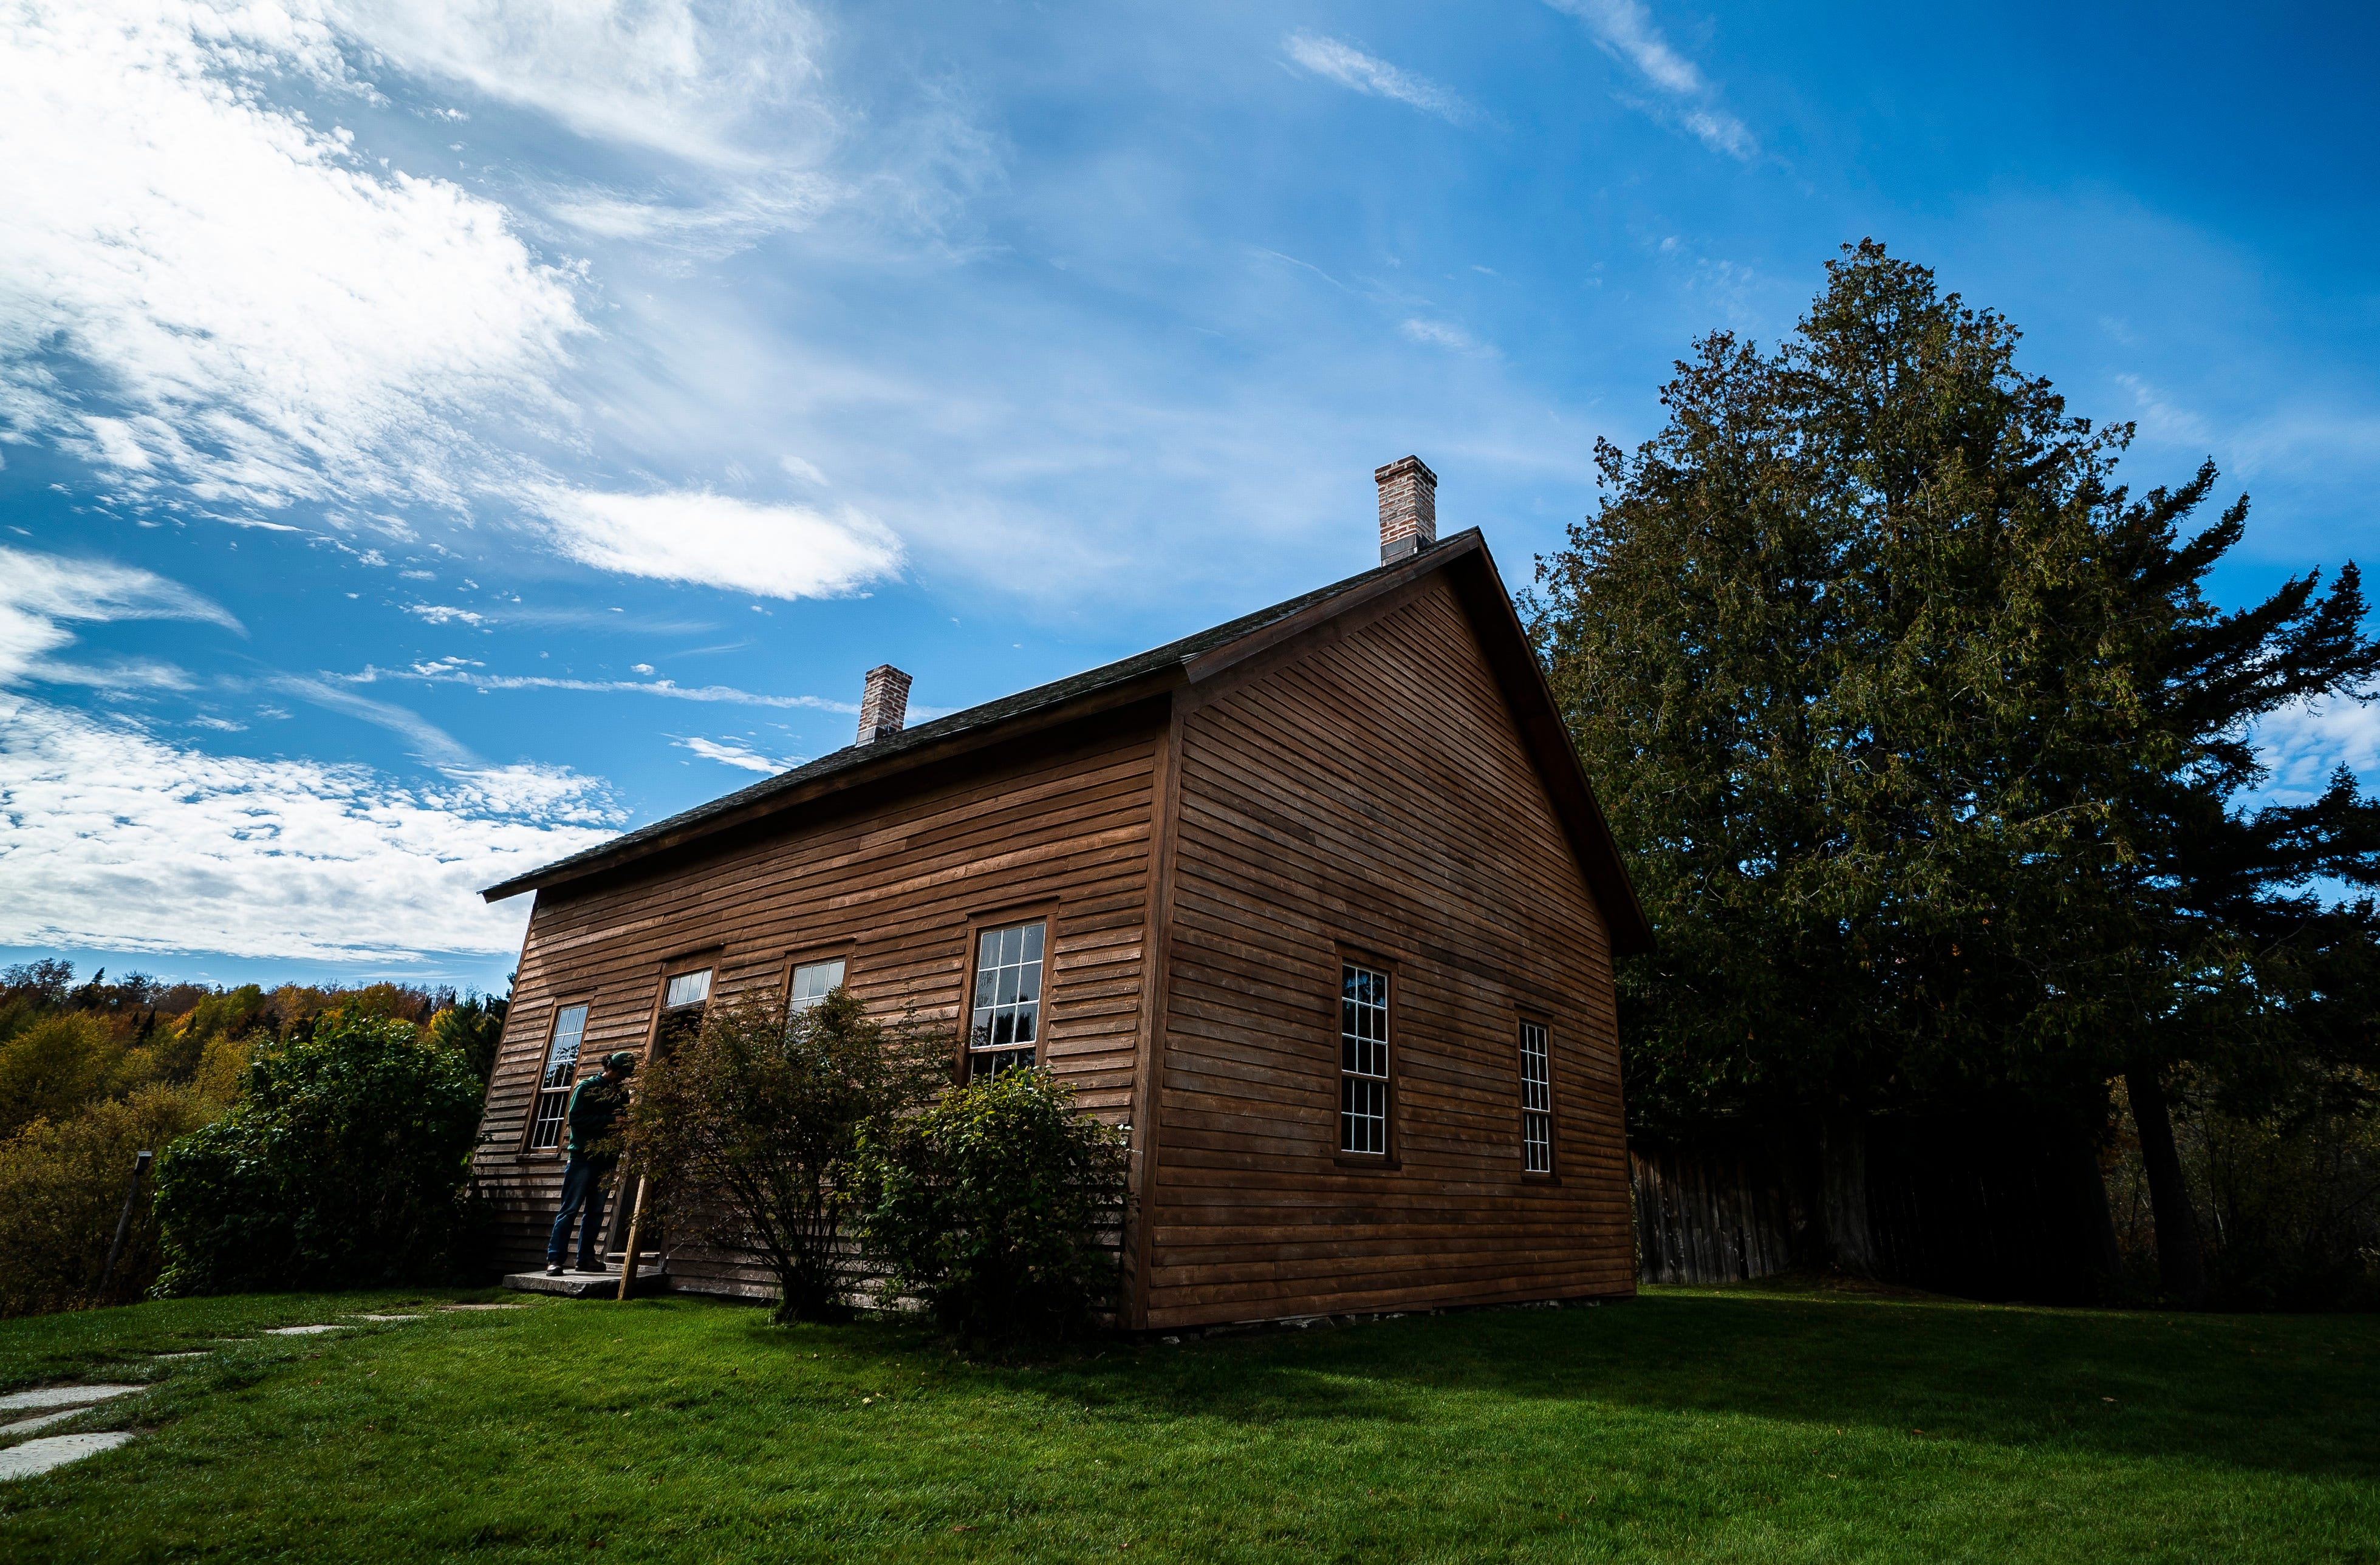 The John Brown Farm historic site in North Elba, New York, where Brown is buried. A militant abolitionist, Brown attacked a federal armory on October 16, 1859, in Harpers Ferry in what was then Virginia in hopes of sparking an armed slave uprising.